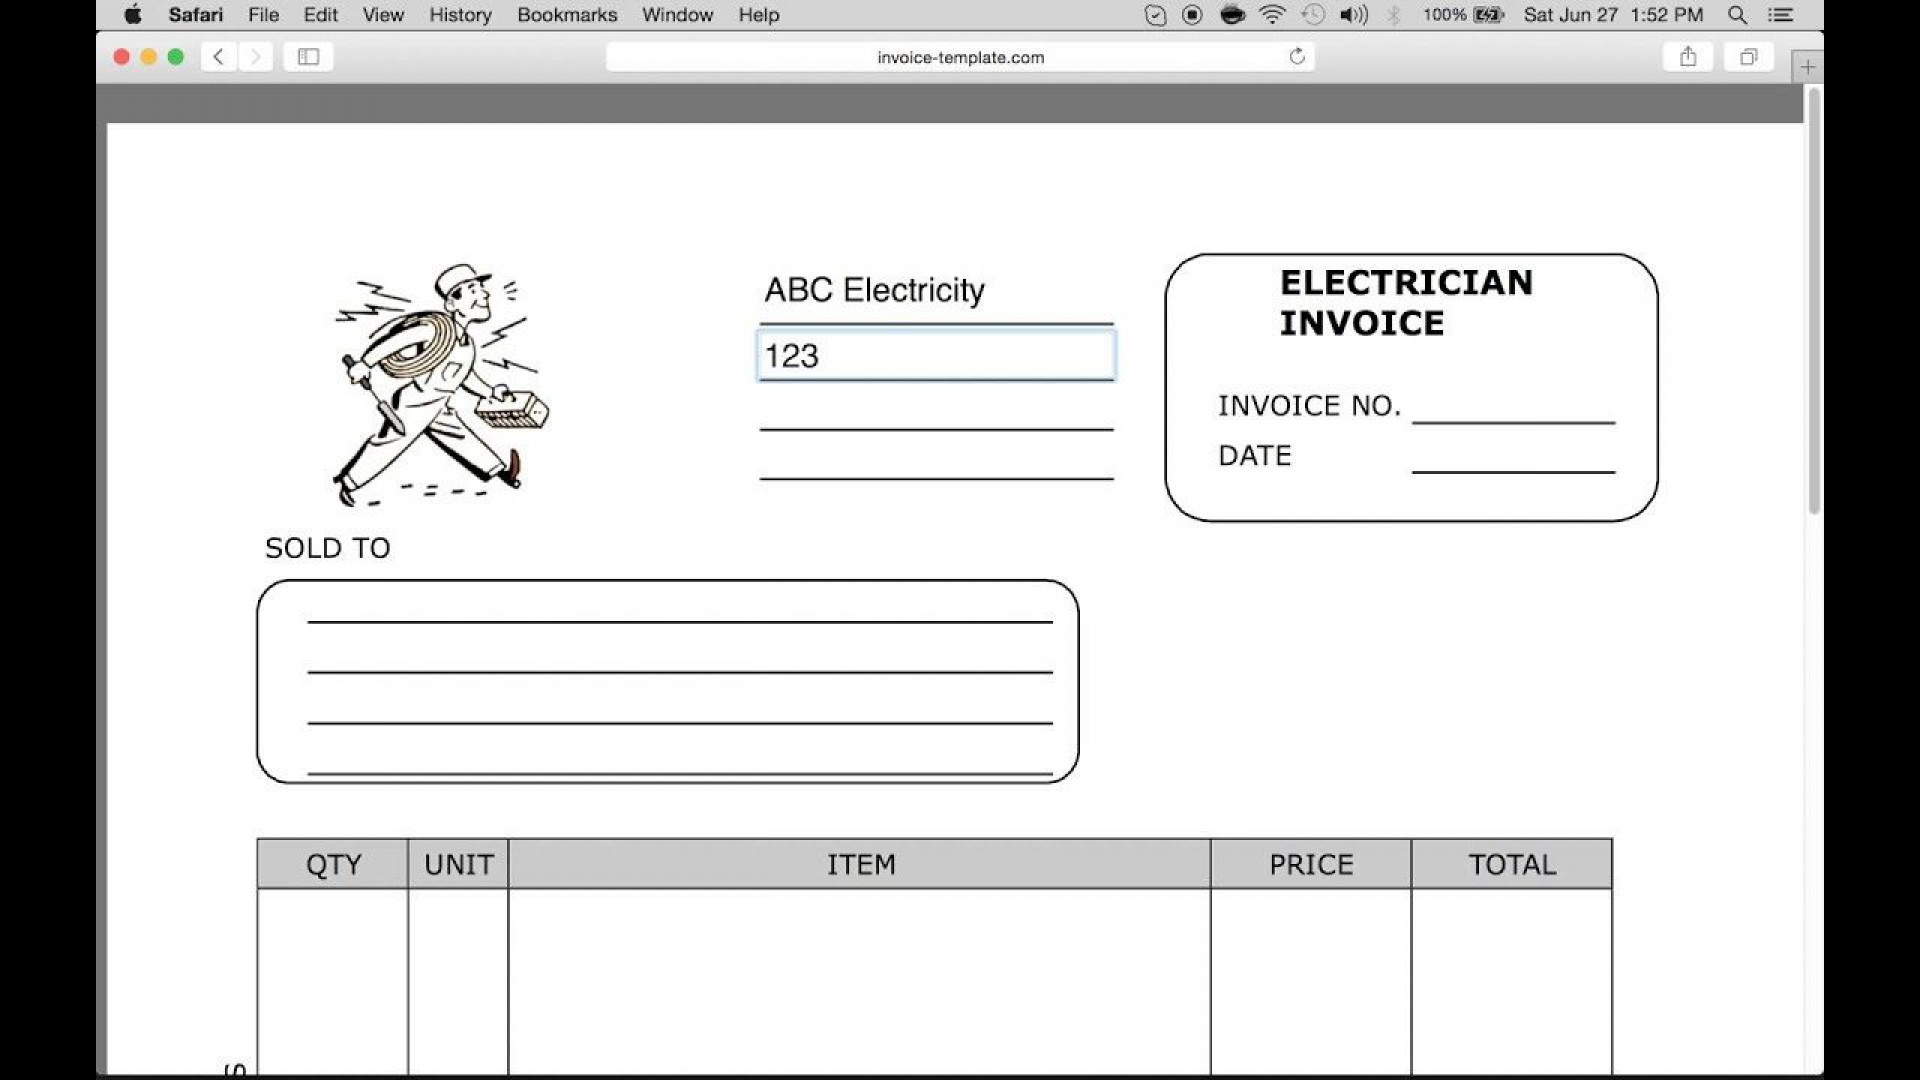 Electrician Invoice Template Free from www.addictionary.org